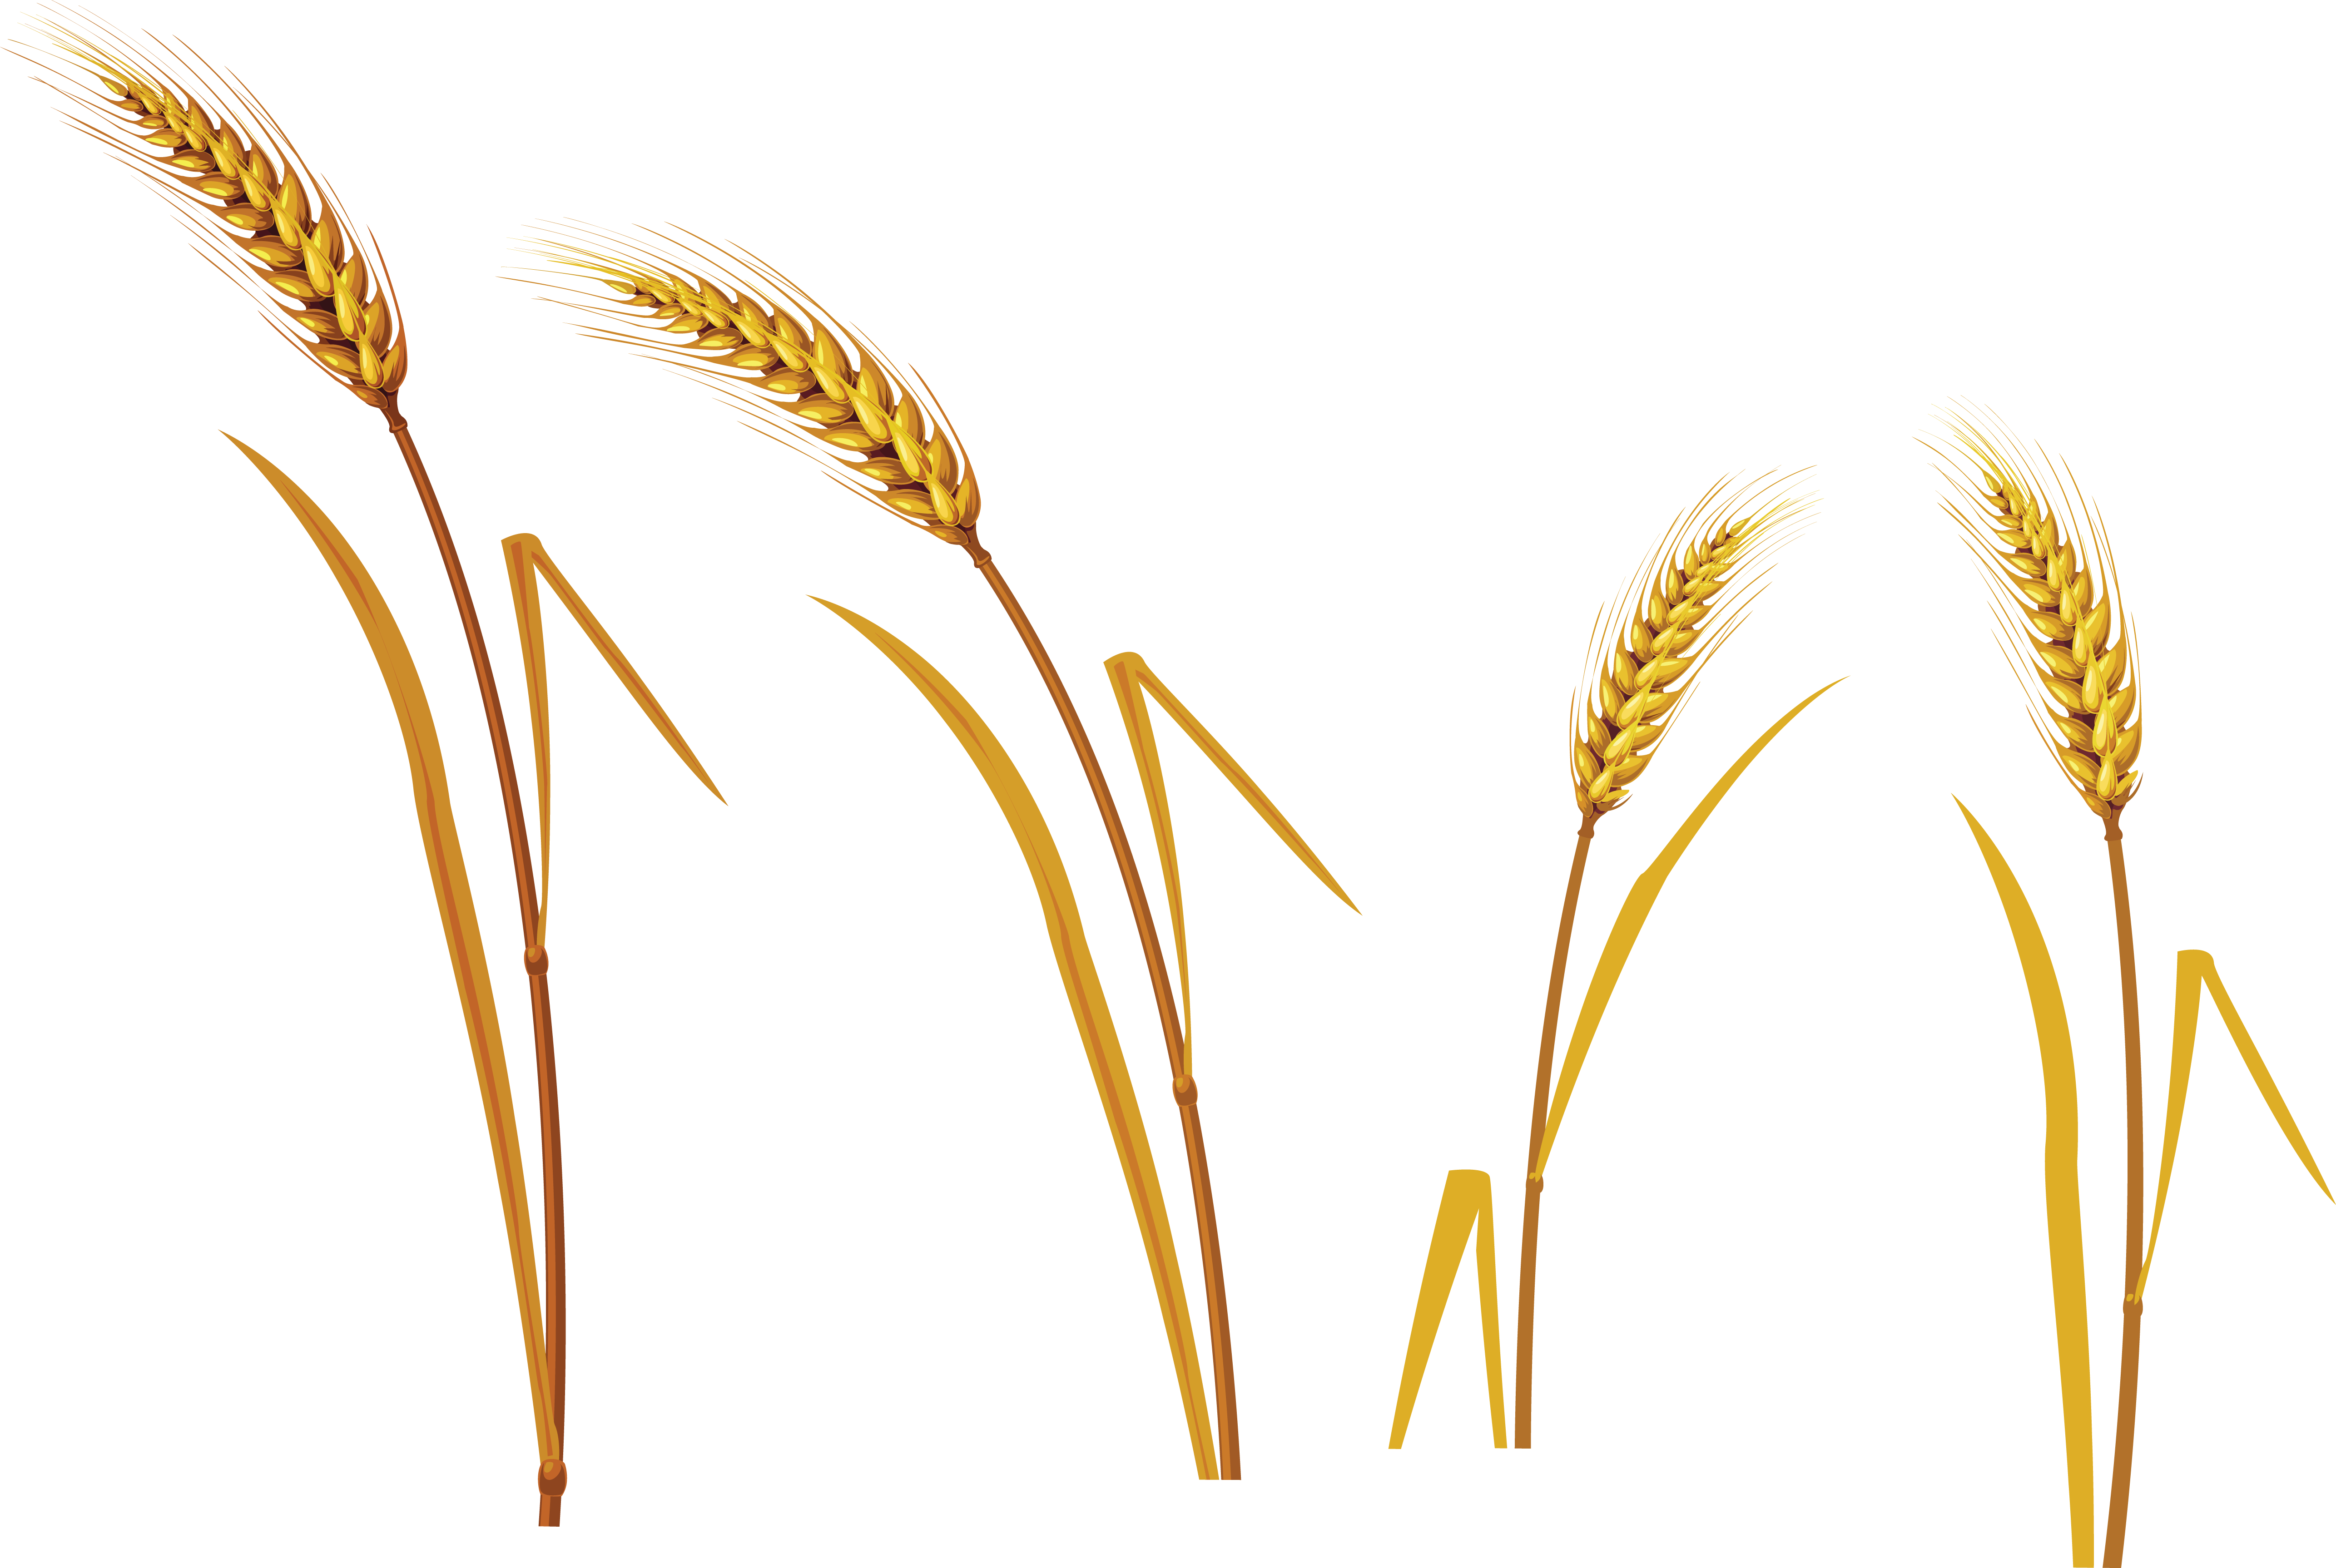 Png . Crops clipart wheat barley